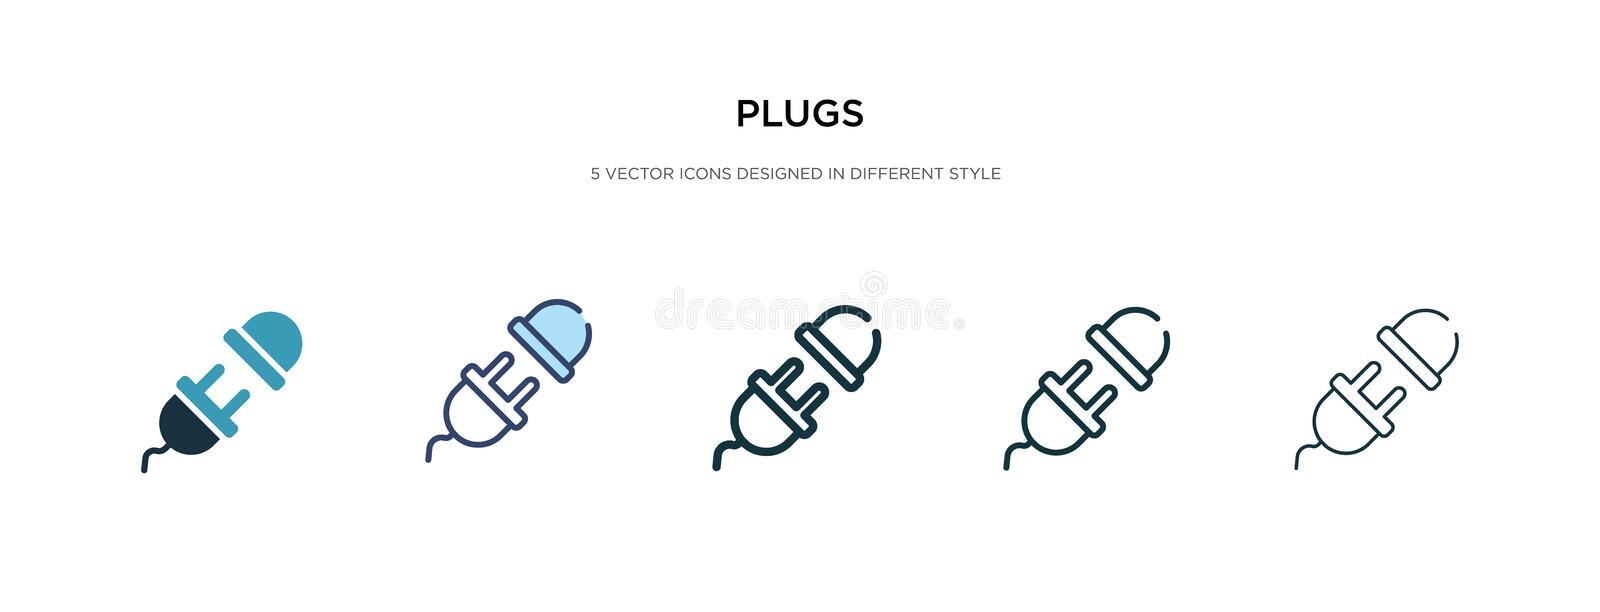 Electric Plugs Filled Outline Icon Stock Vector